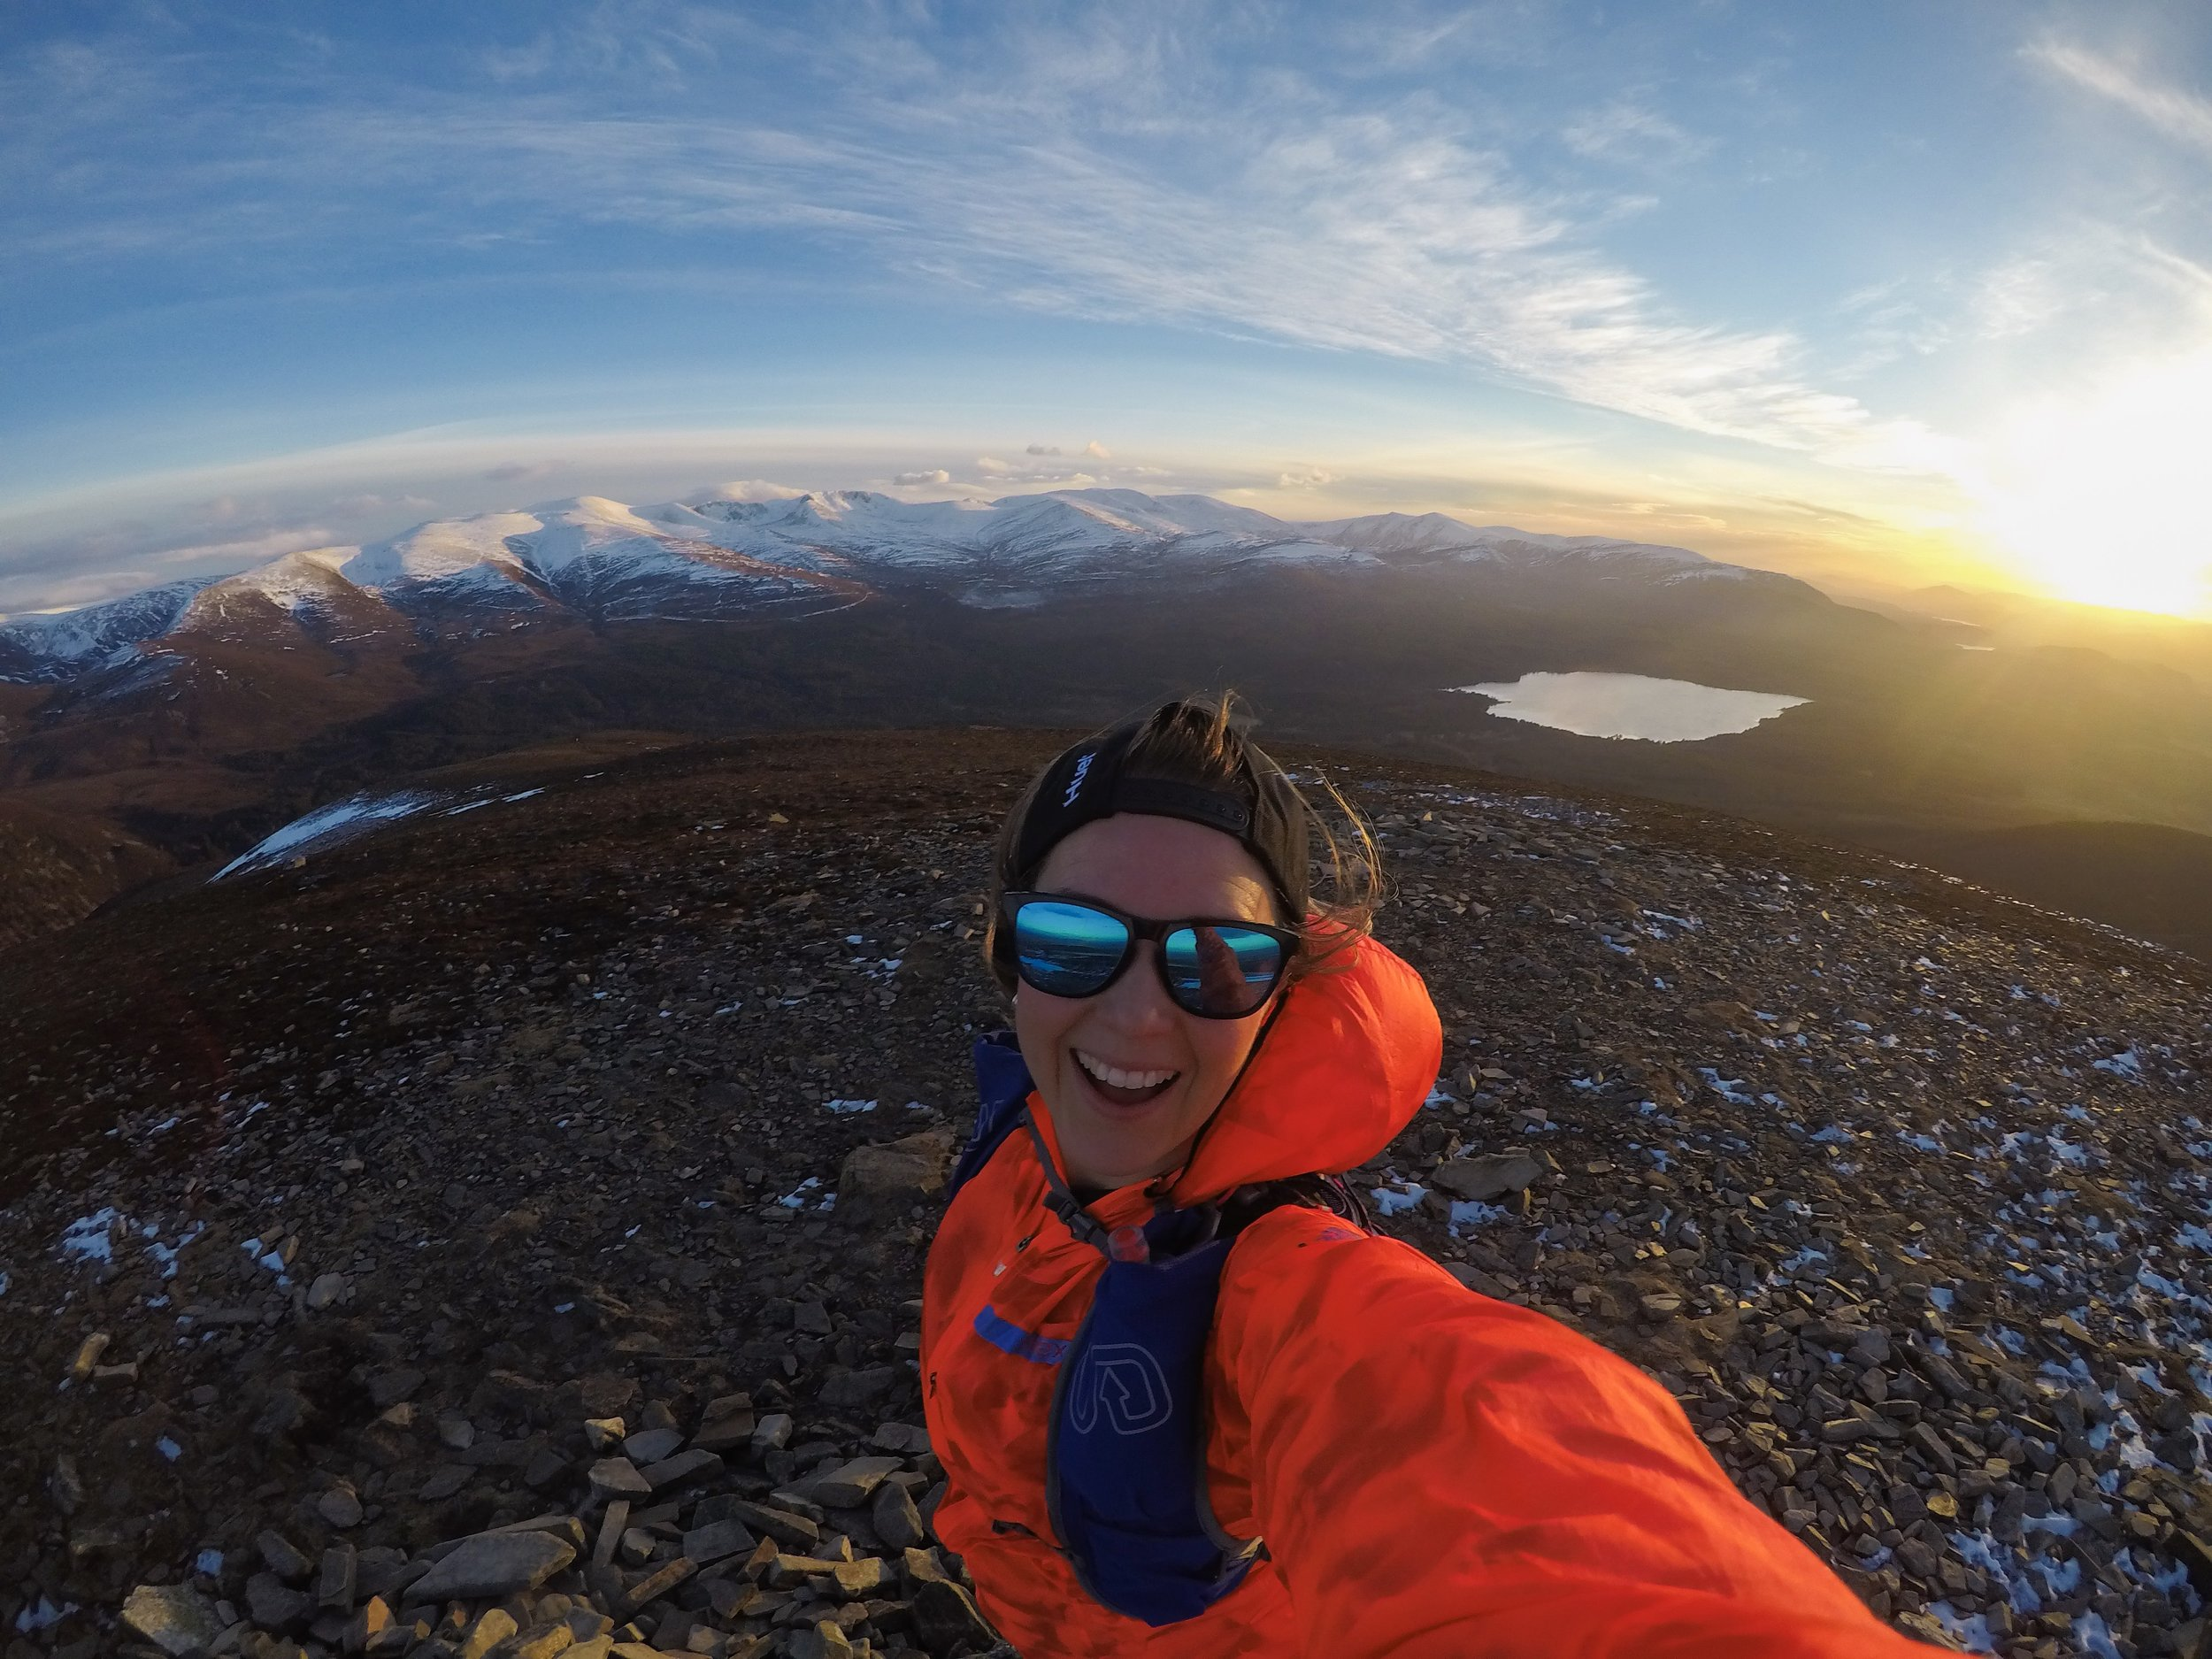 Running up mountains at sunset in the Cairngorms, Scotland